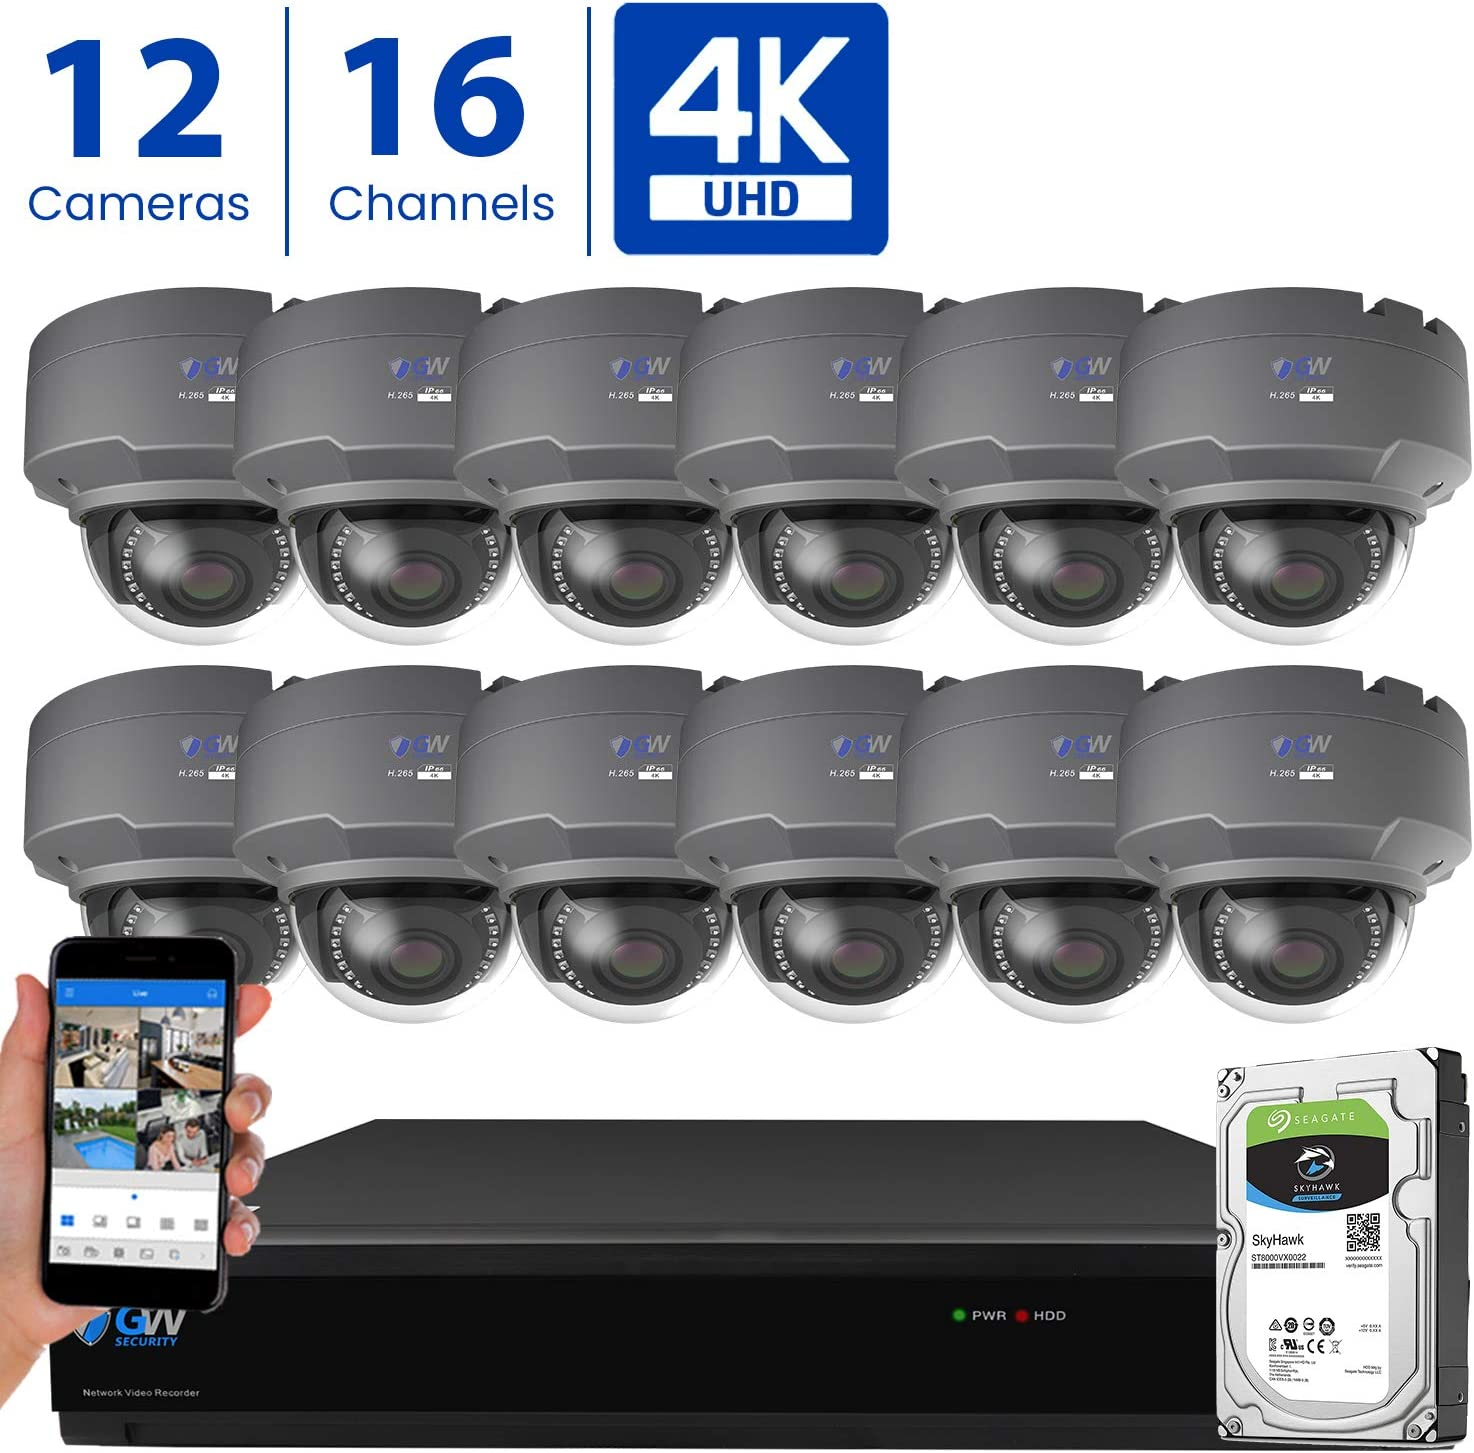 GW 16 Channel 4K H.265 CCTV DVR Security Camera System with 12 x UHD 8MP 2.8-12mm Varifocal Zoom 4K Dome Surveillance Cameras and 4TB HDD, Free Remote View, Motion Alert with Snapshot